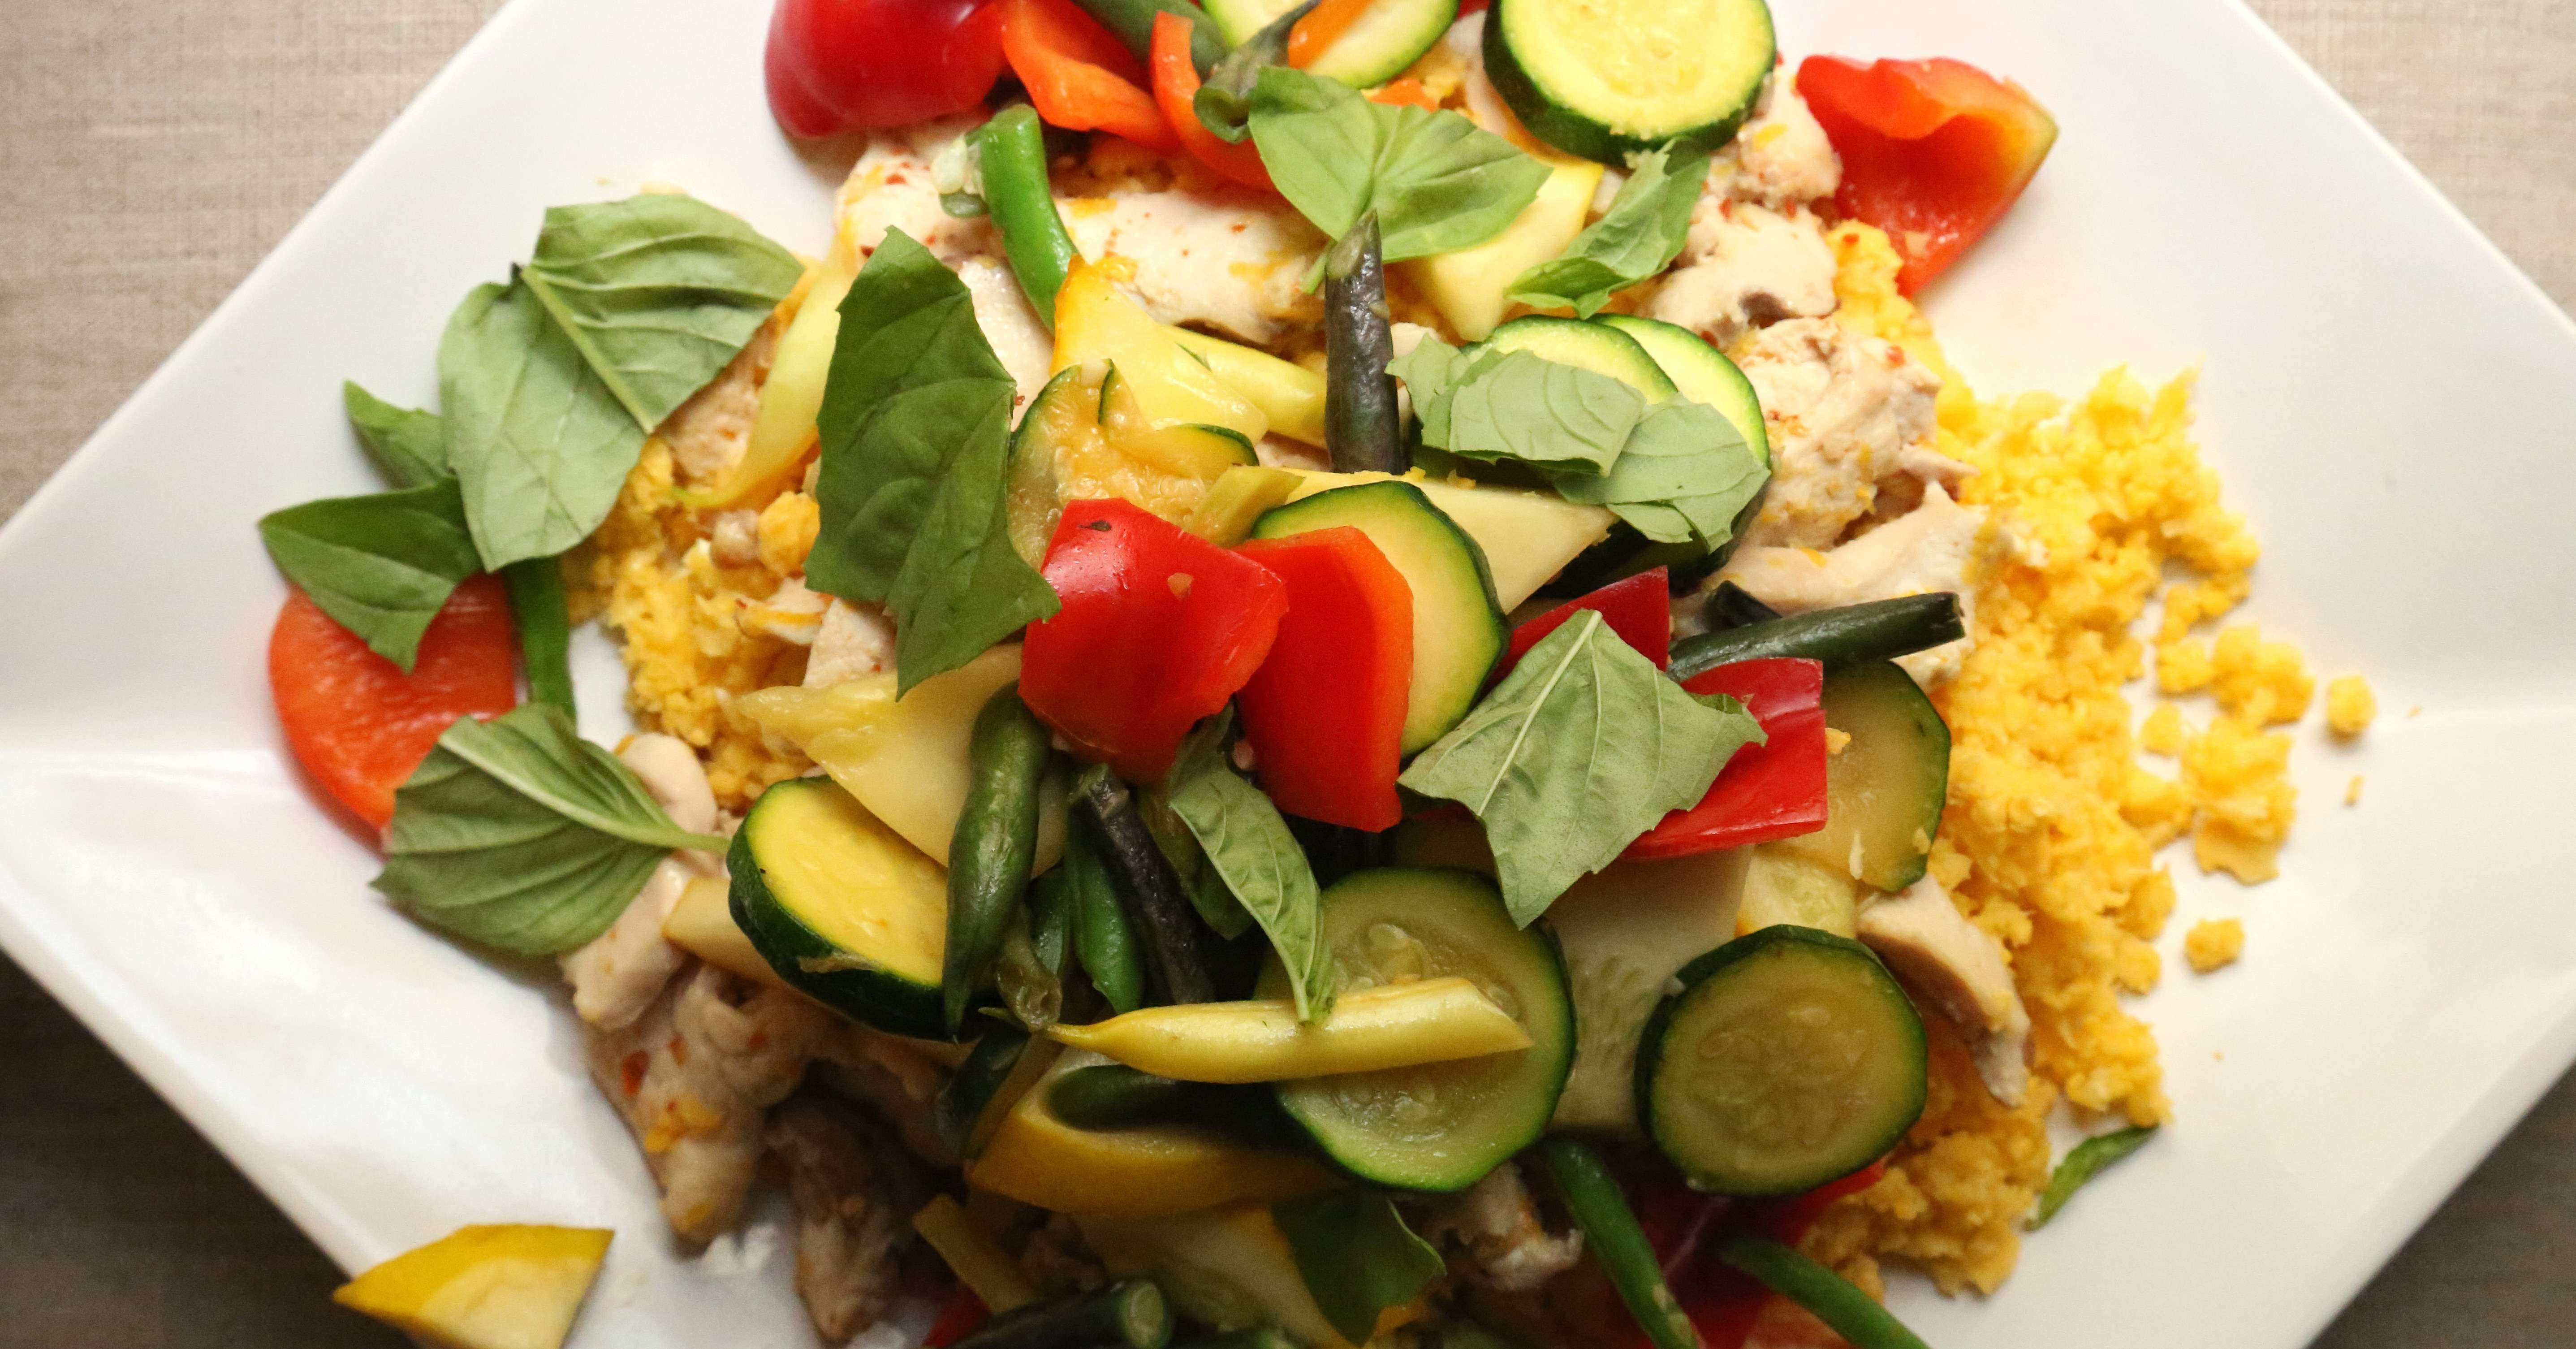 Fast and Easy Stir-Fry With Chicken and Summer Vegetables | POPSUGAR ...